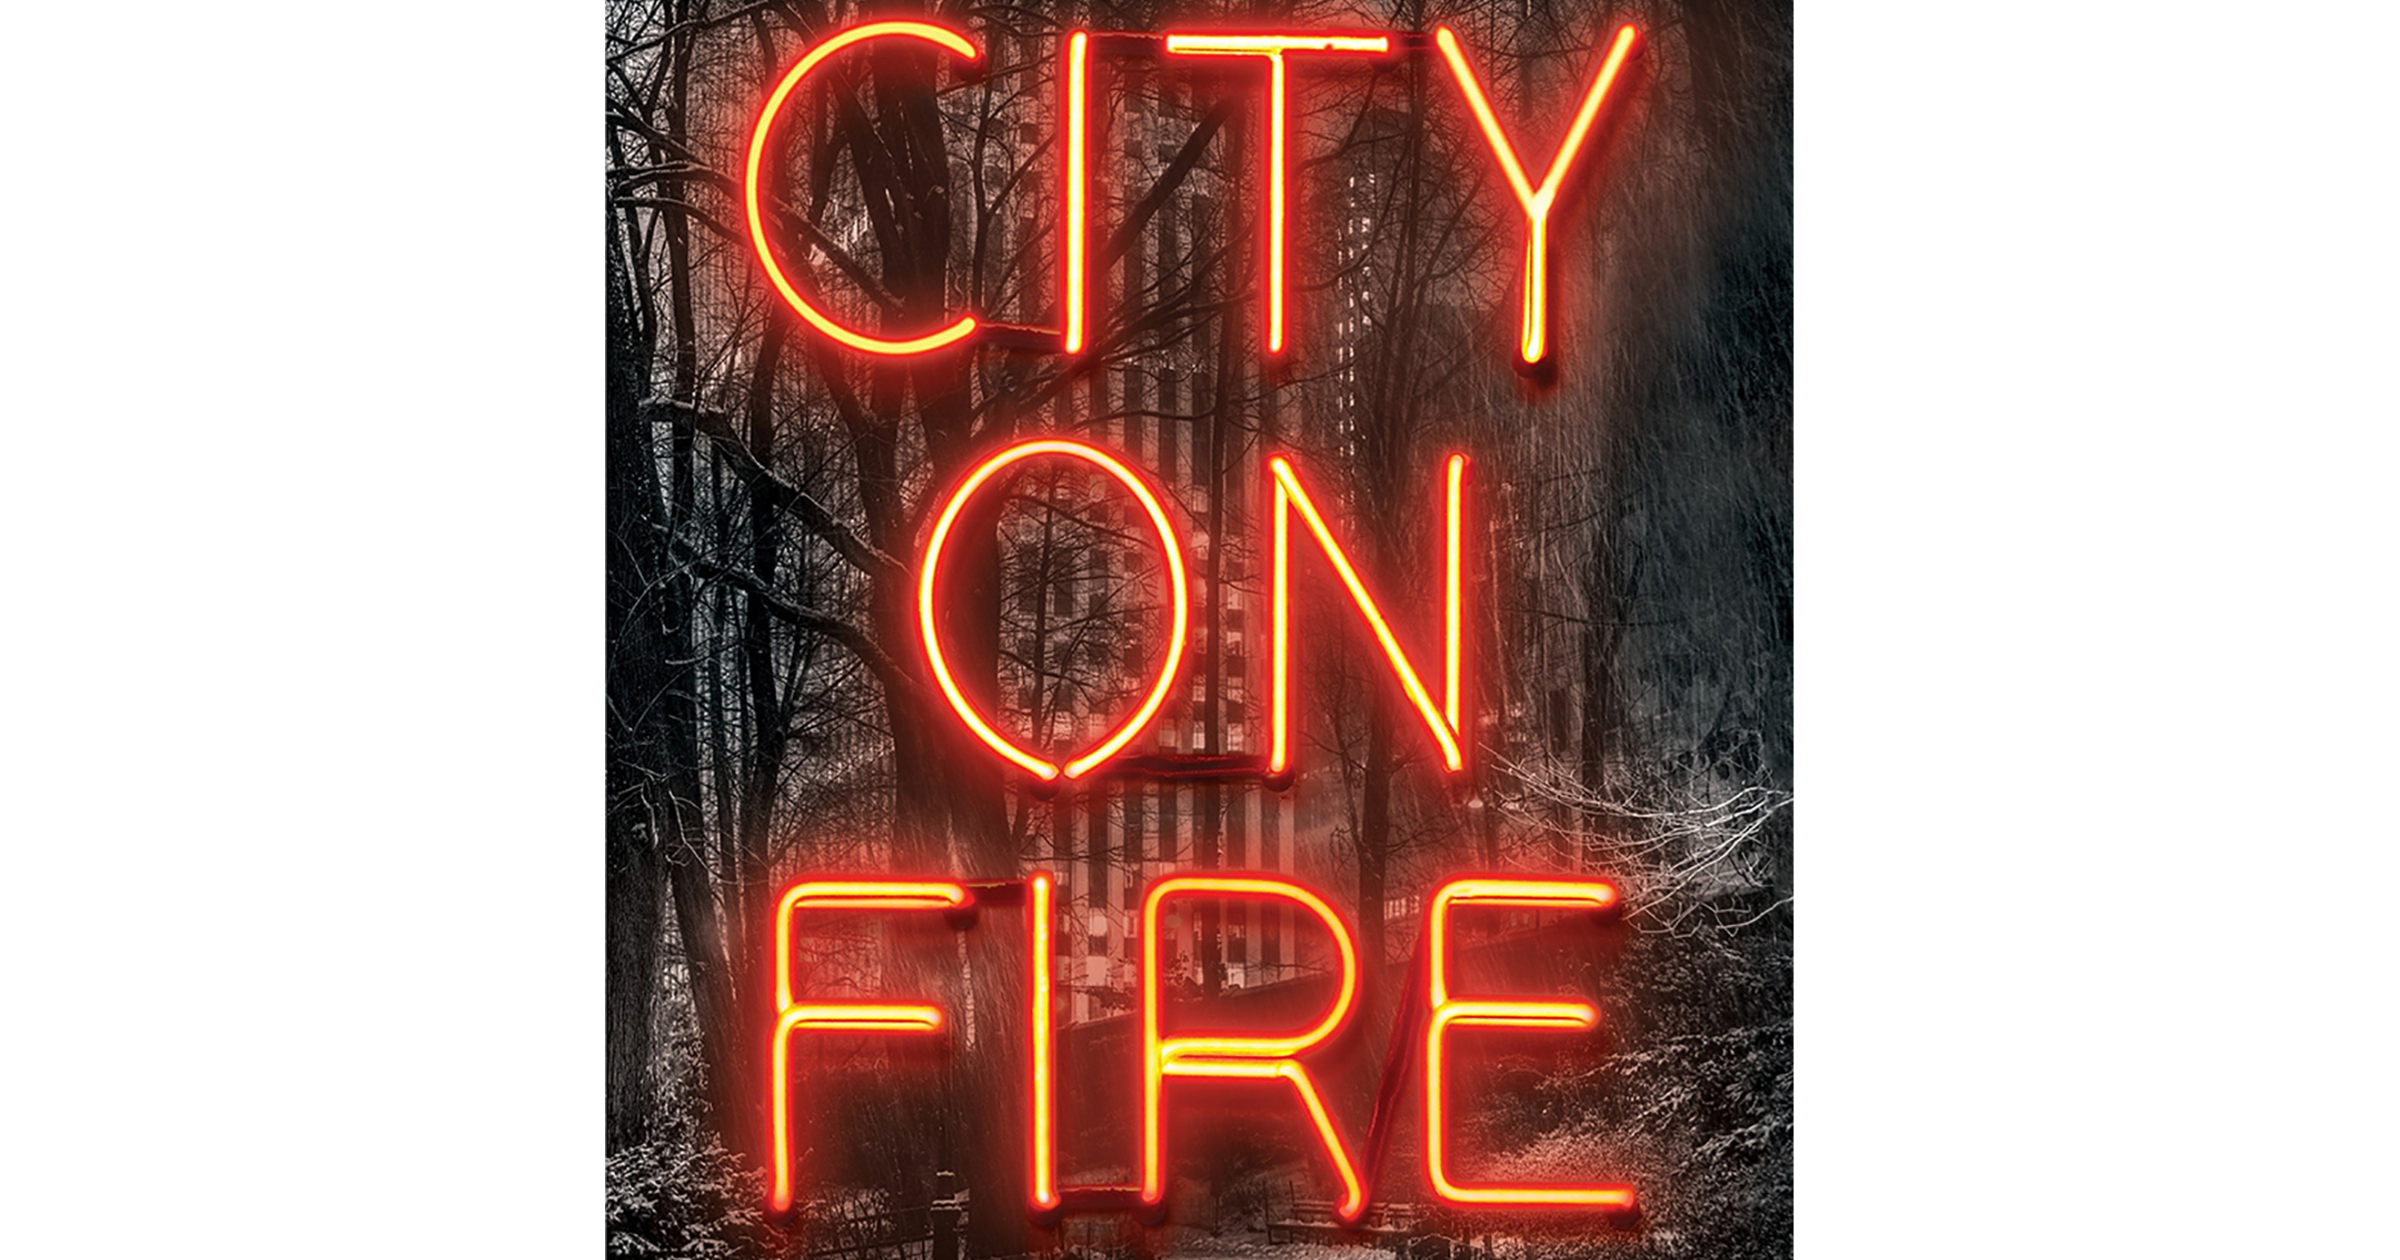 City on Fire coming to Apple TV+